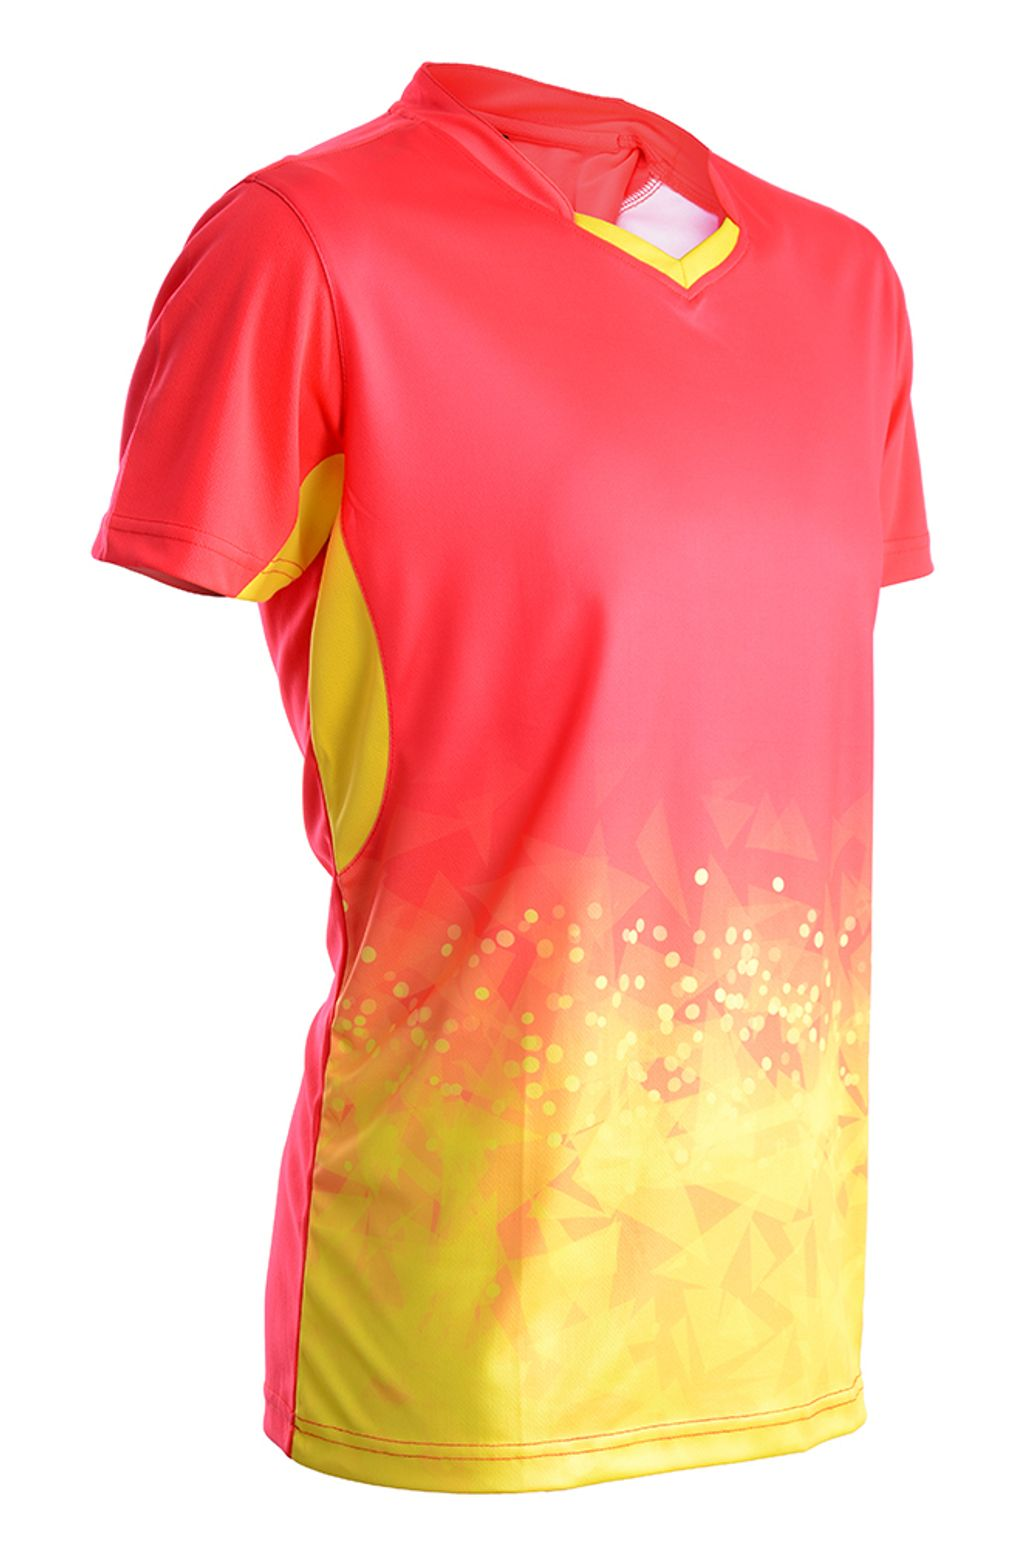 MOV-4012-Red-Yellow-Small.jpg